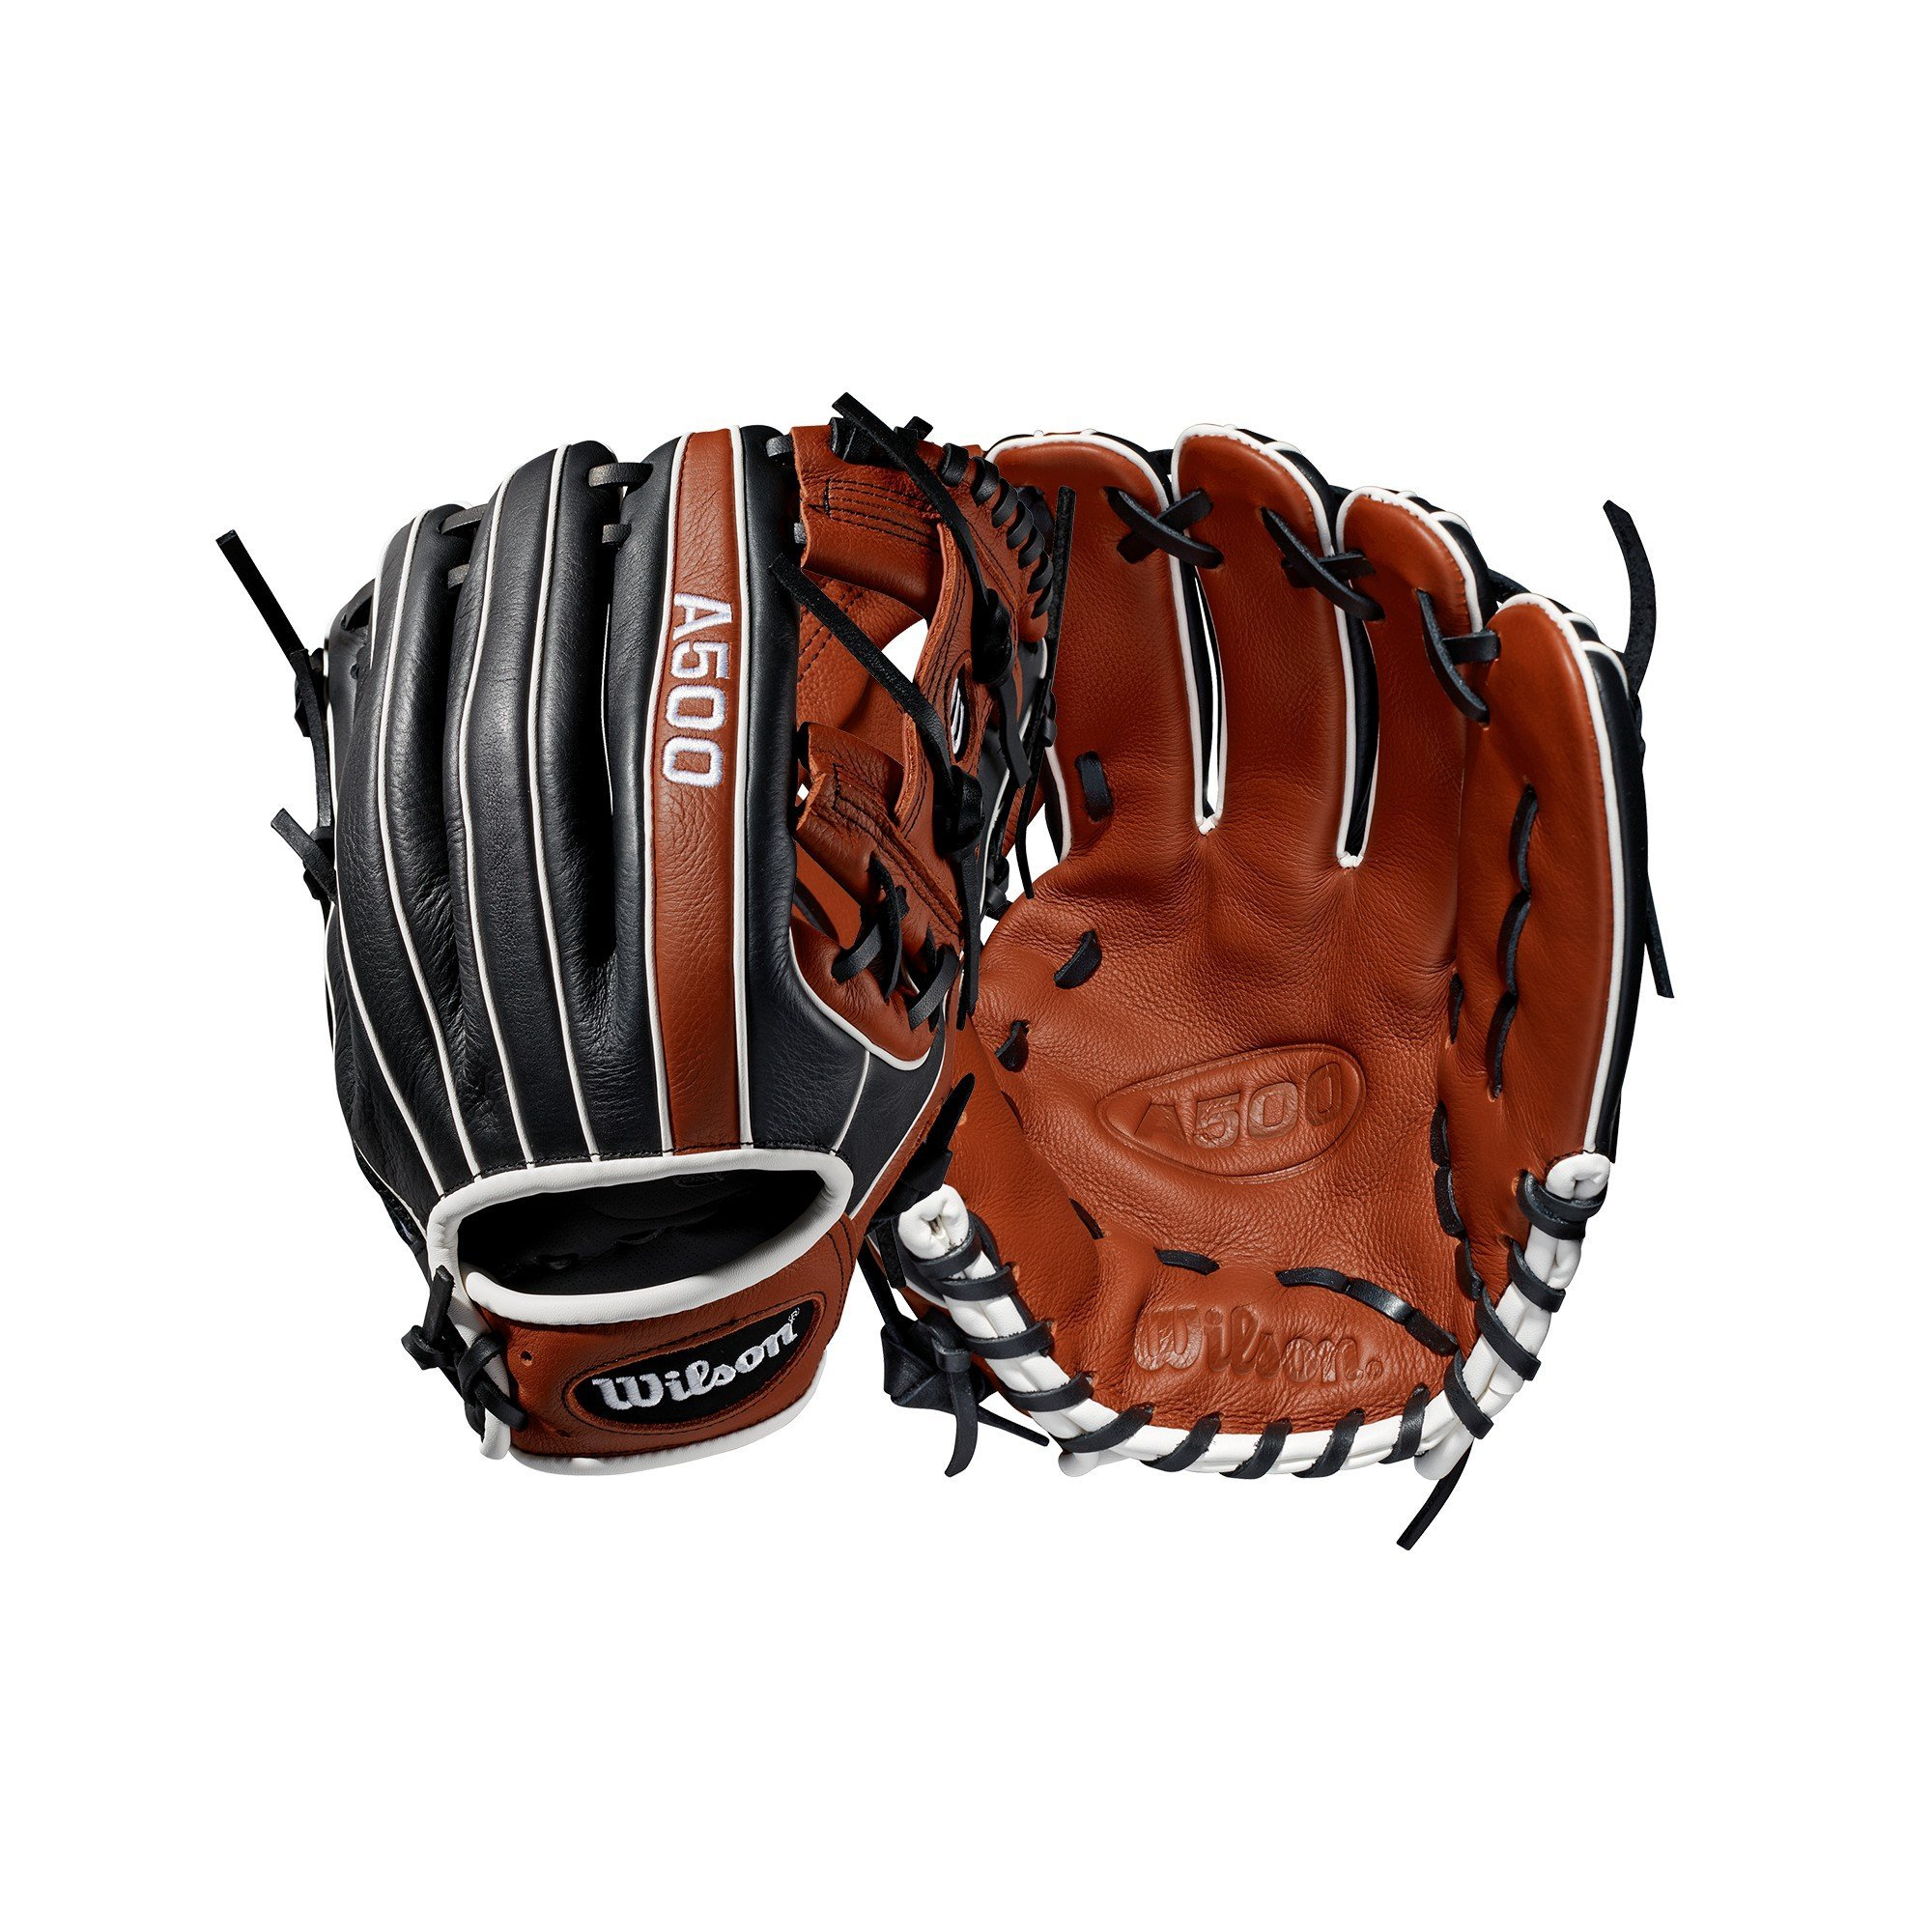 "WTA05RB19115 Wilson A500 Youth Baseball Glove 11.5"" - Regular THUMBNAIL"